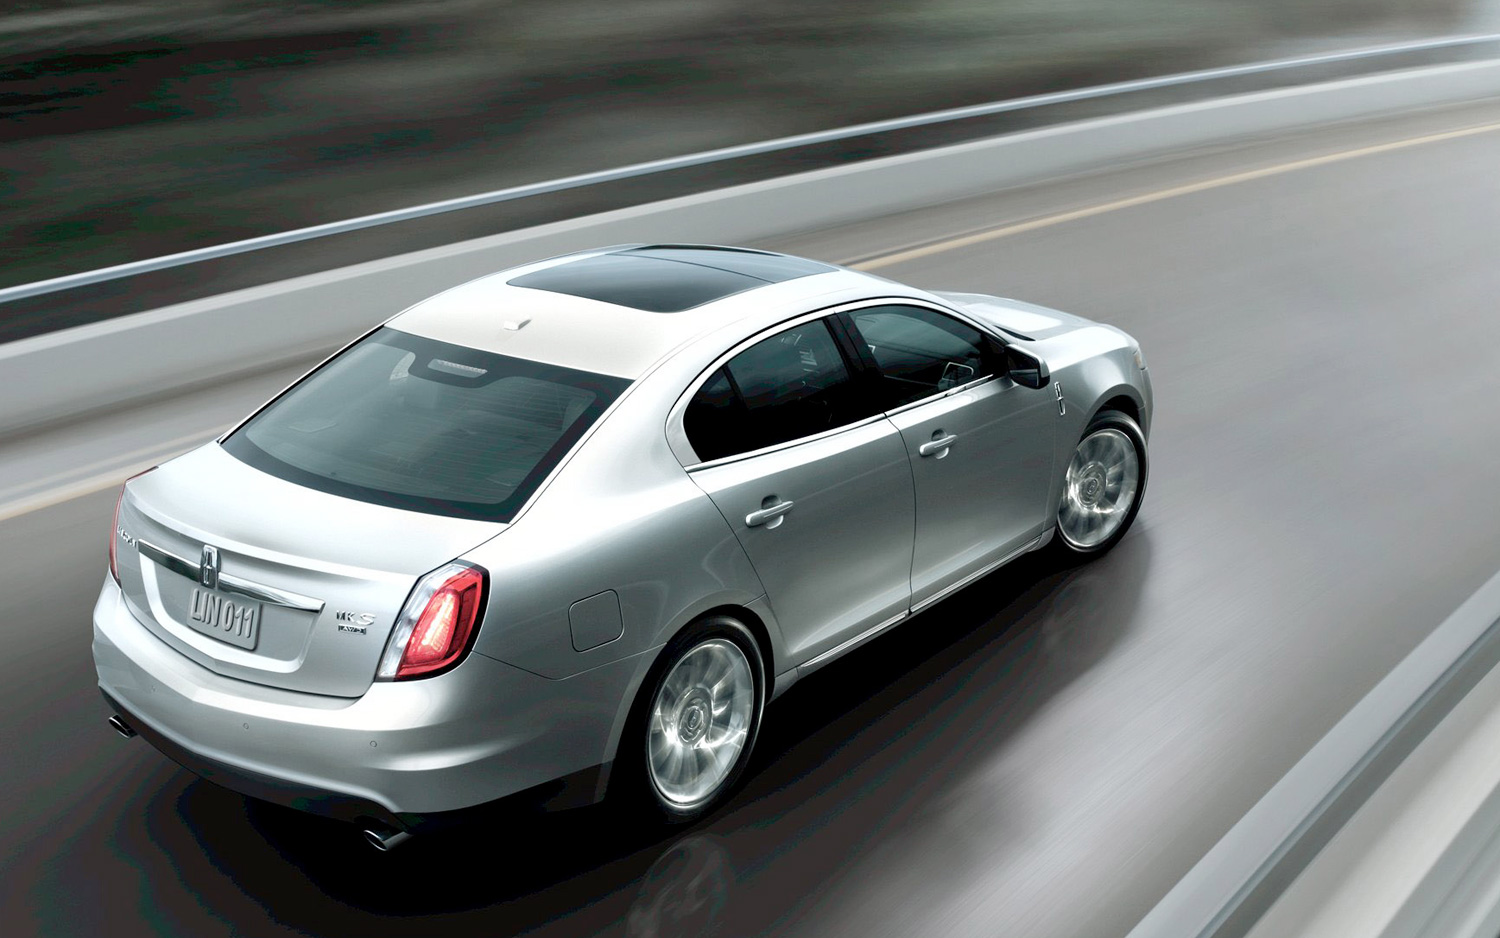 motor cars sedan rating angular trend reviews lincoln front fwd mks and